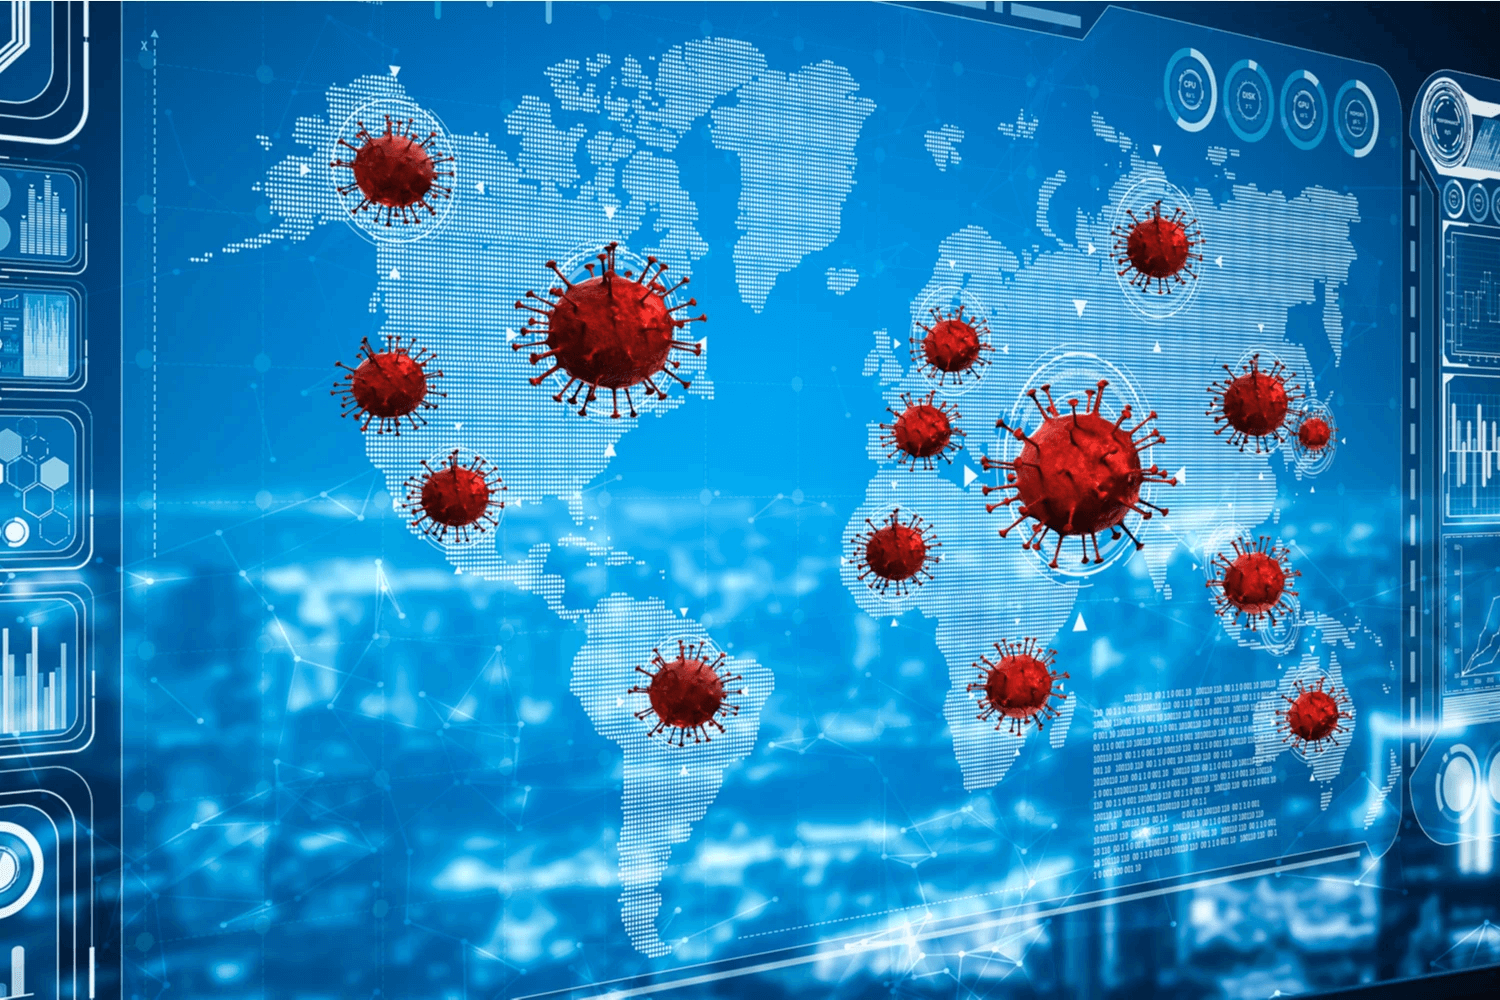 What does the recent boom in Al & ML technologies amidst a global pandemic mean for the future?